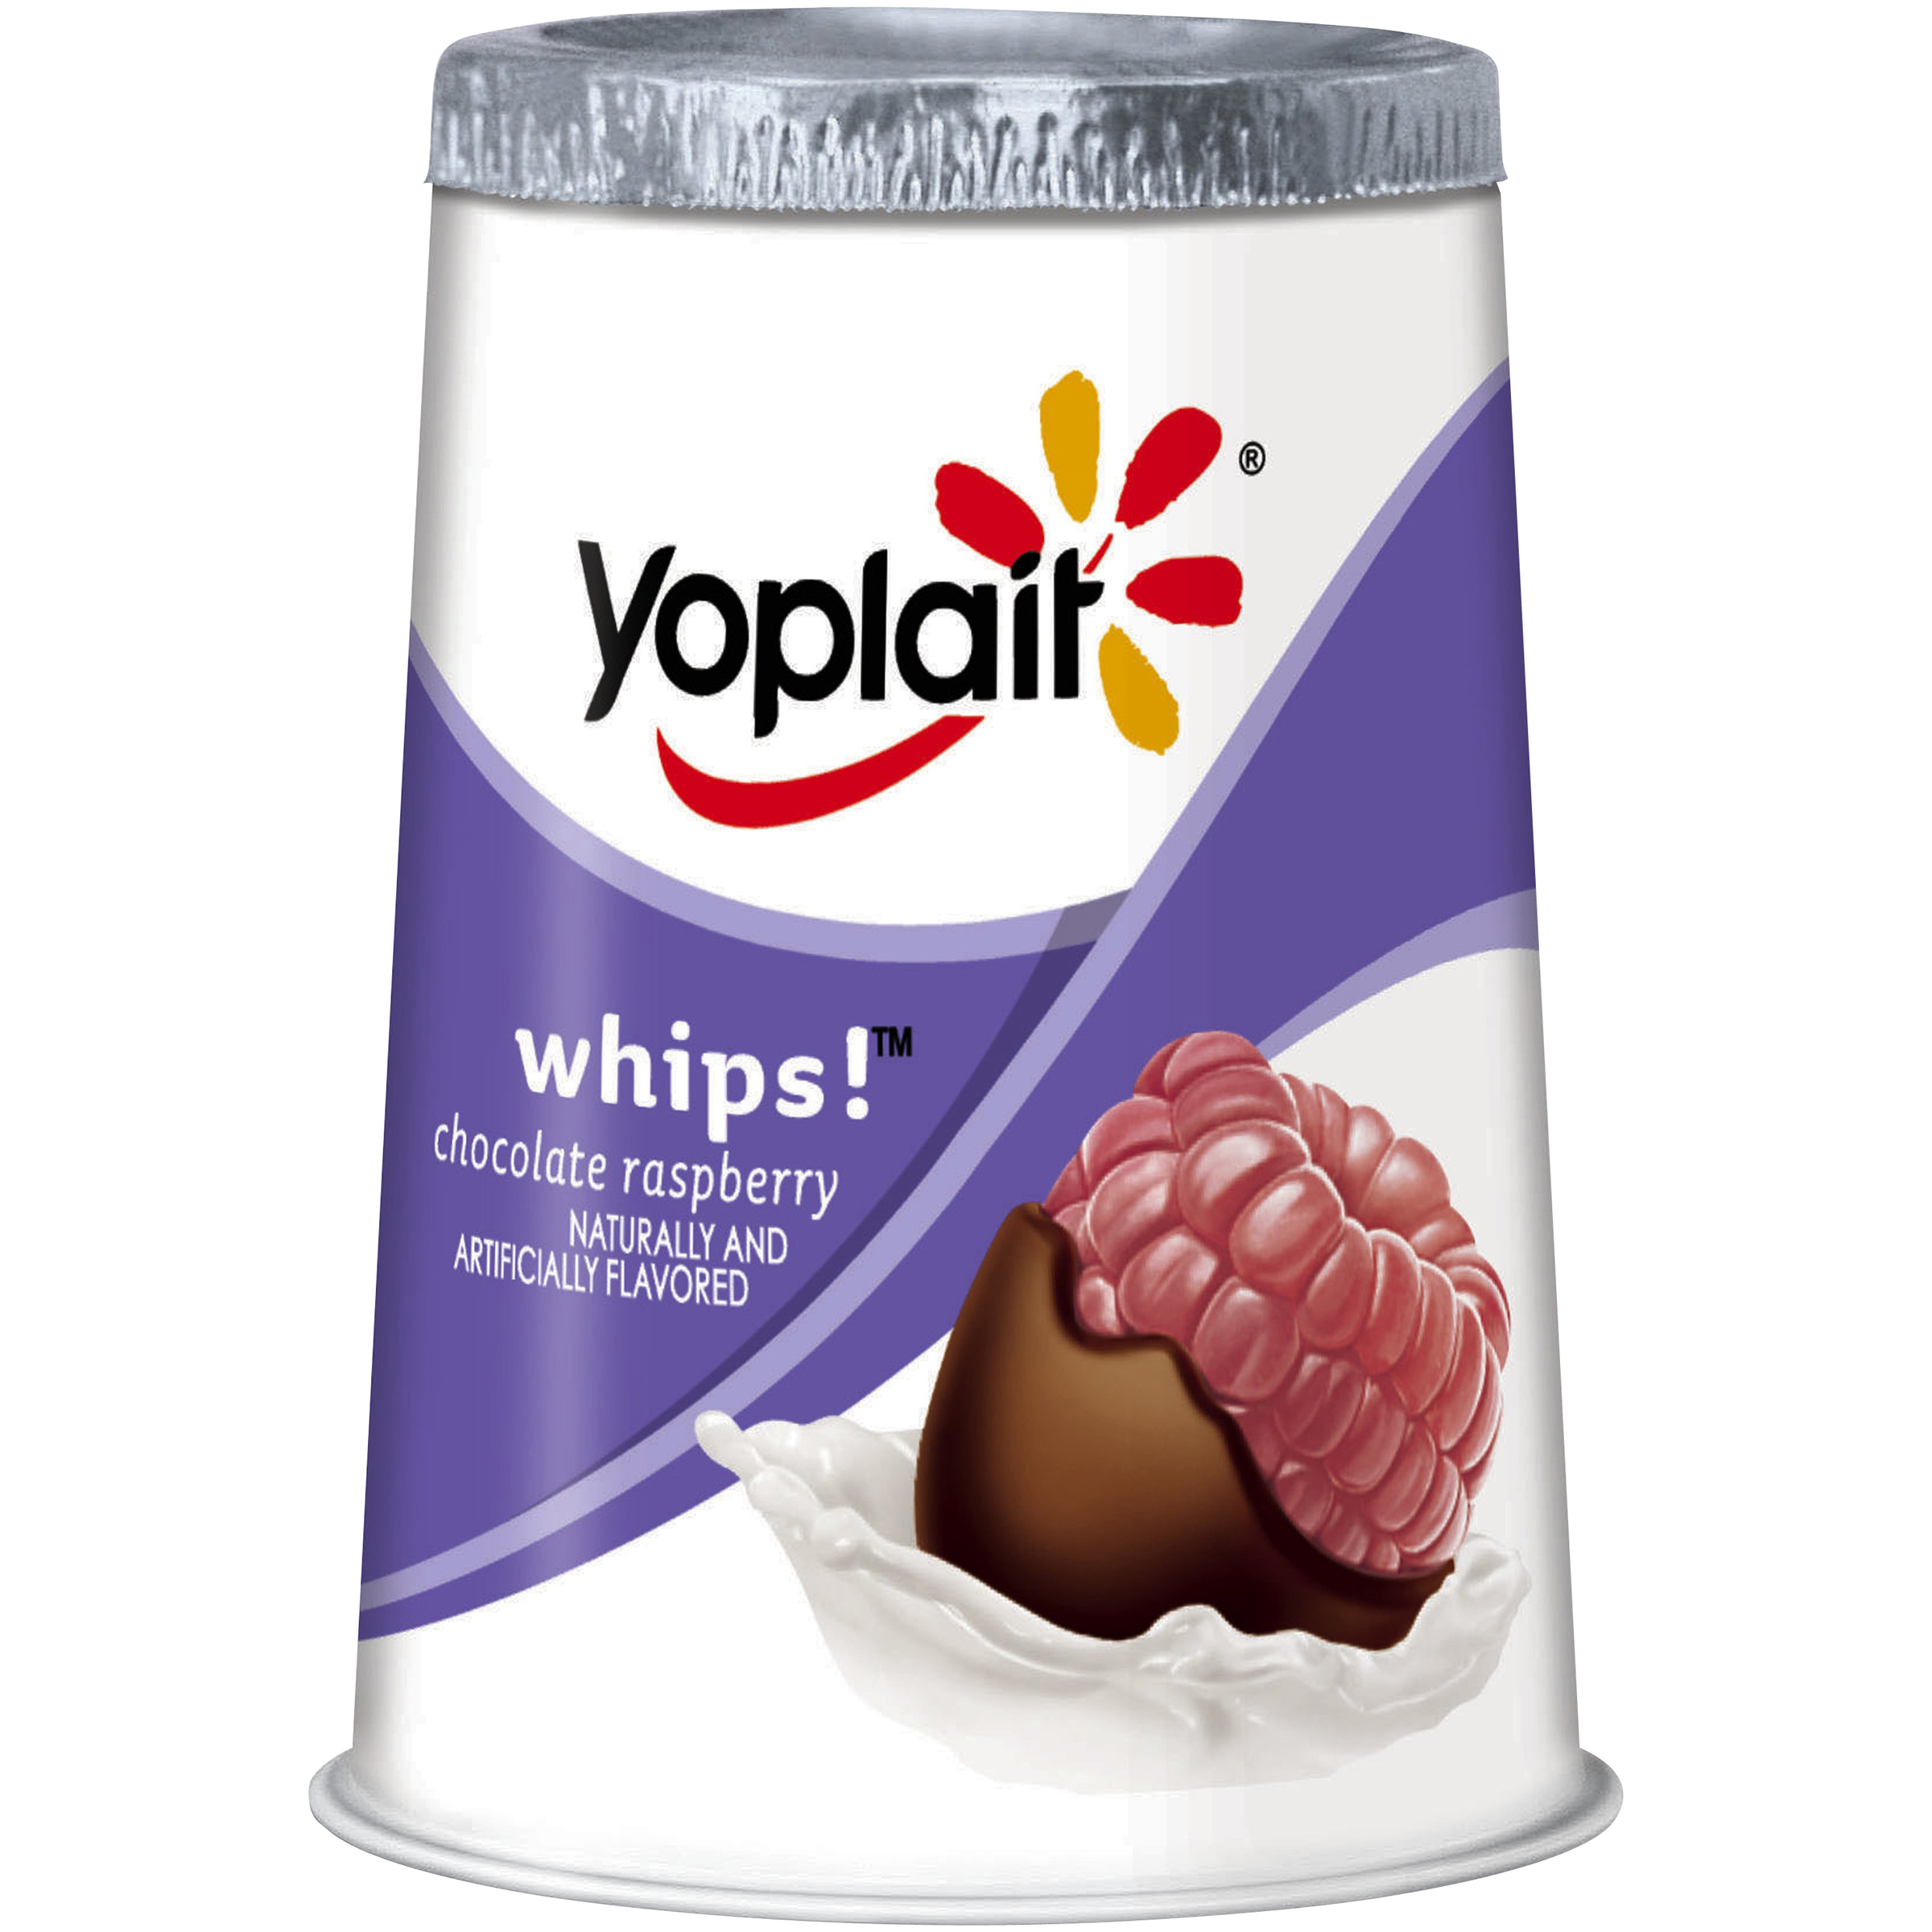 Yoplait® Whips!™ Chocolate Raspberry Yogurt Mousse 4 oz. Cup